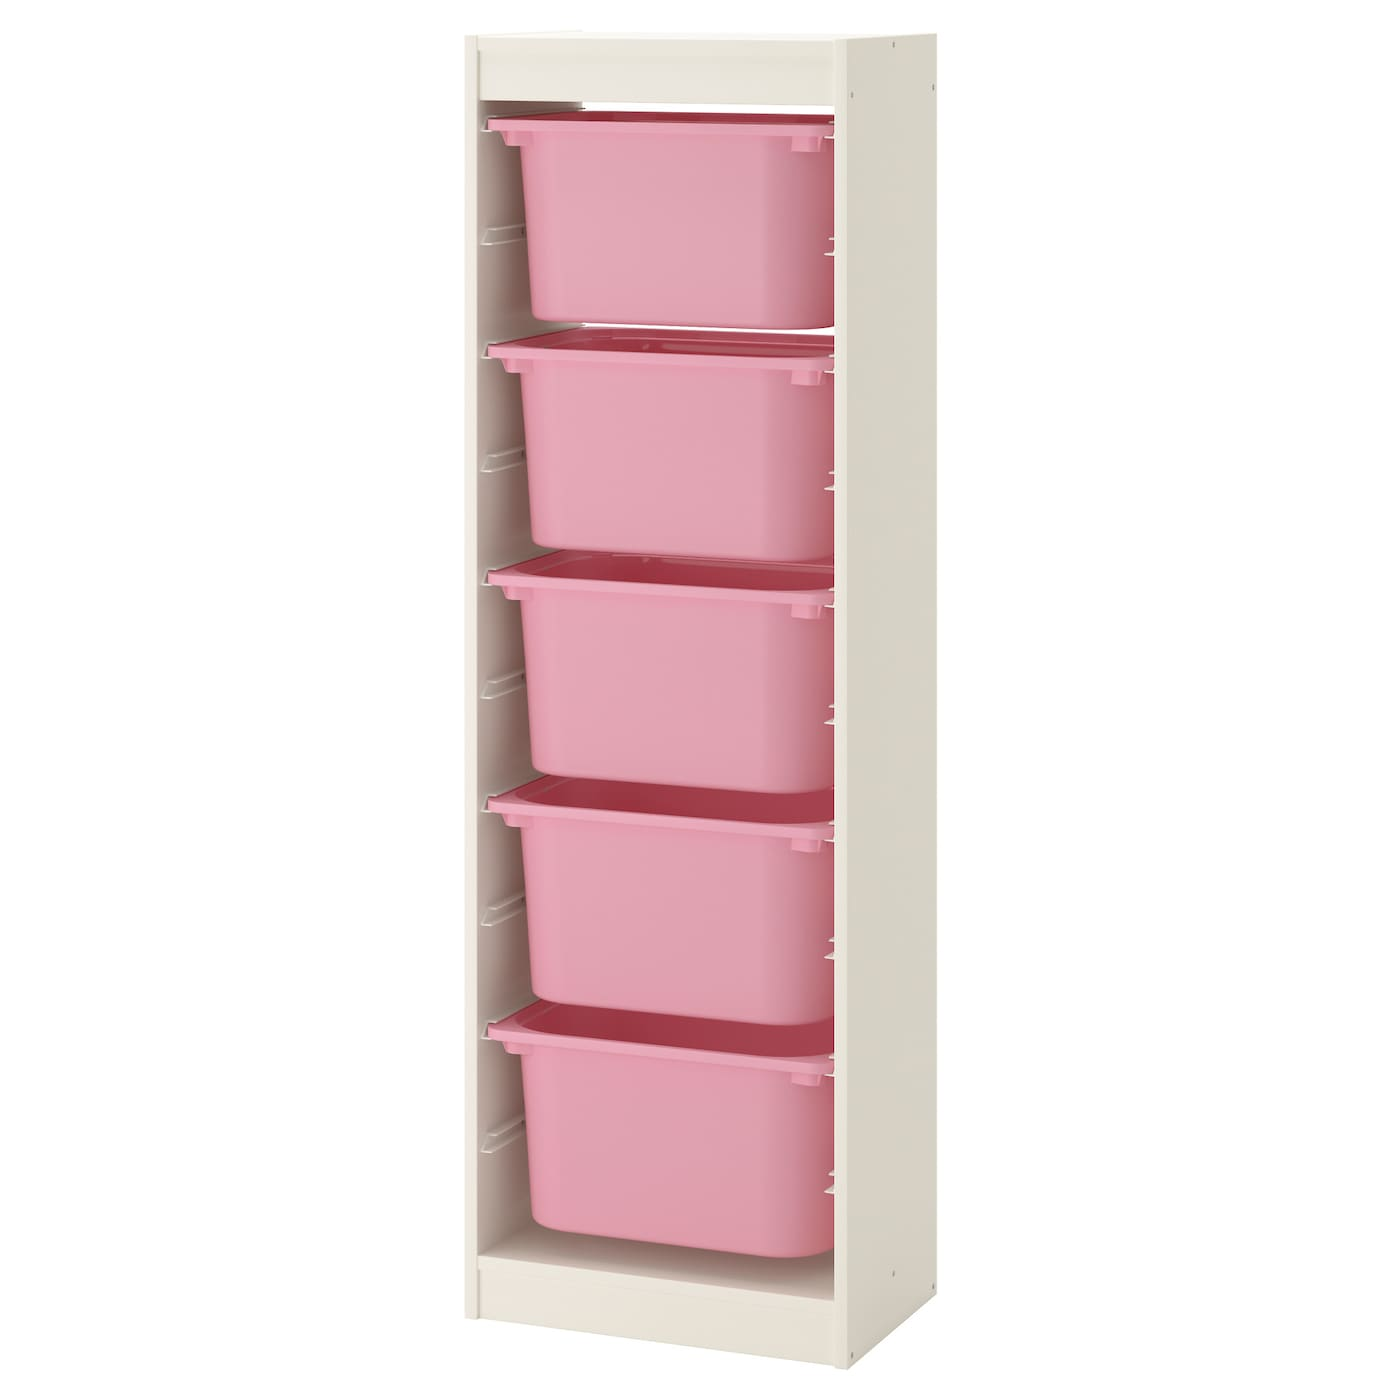 trofast storage combination with boxes white pink 46x30x145 cm ikea. Black Bedroom Furniture Sets. Home Design Ideas